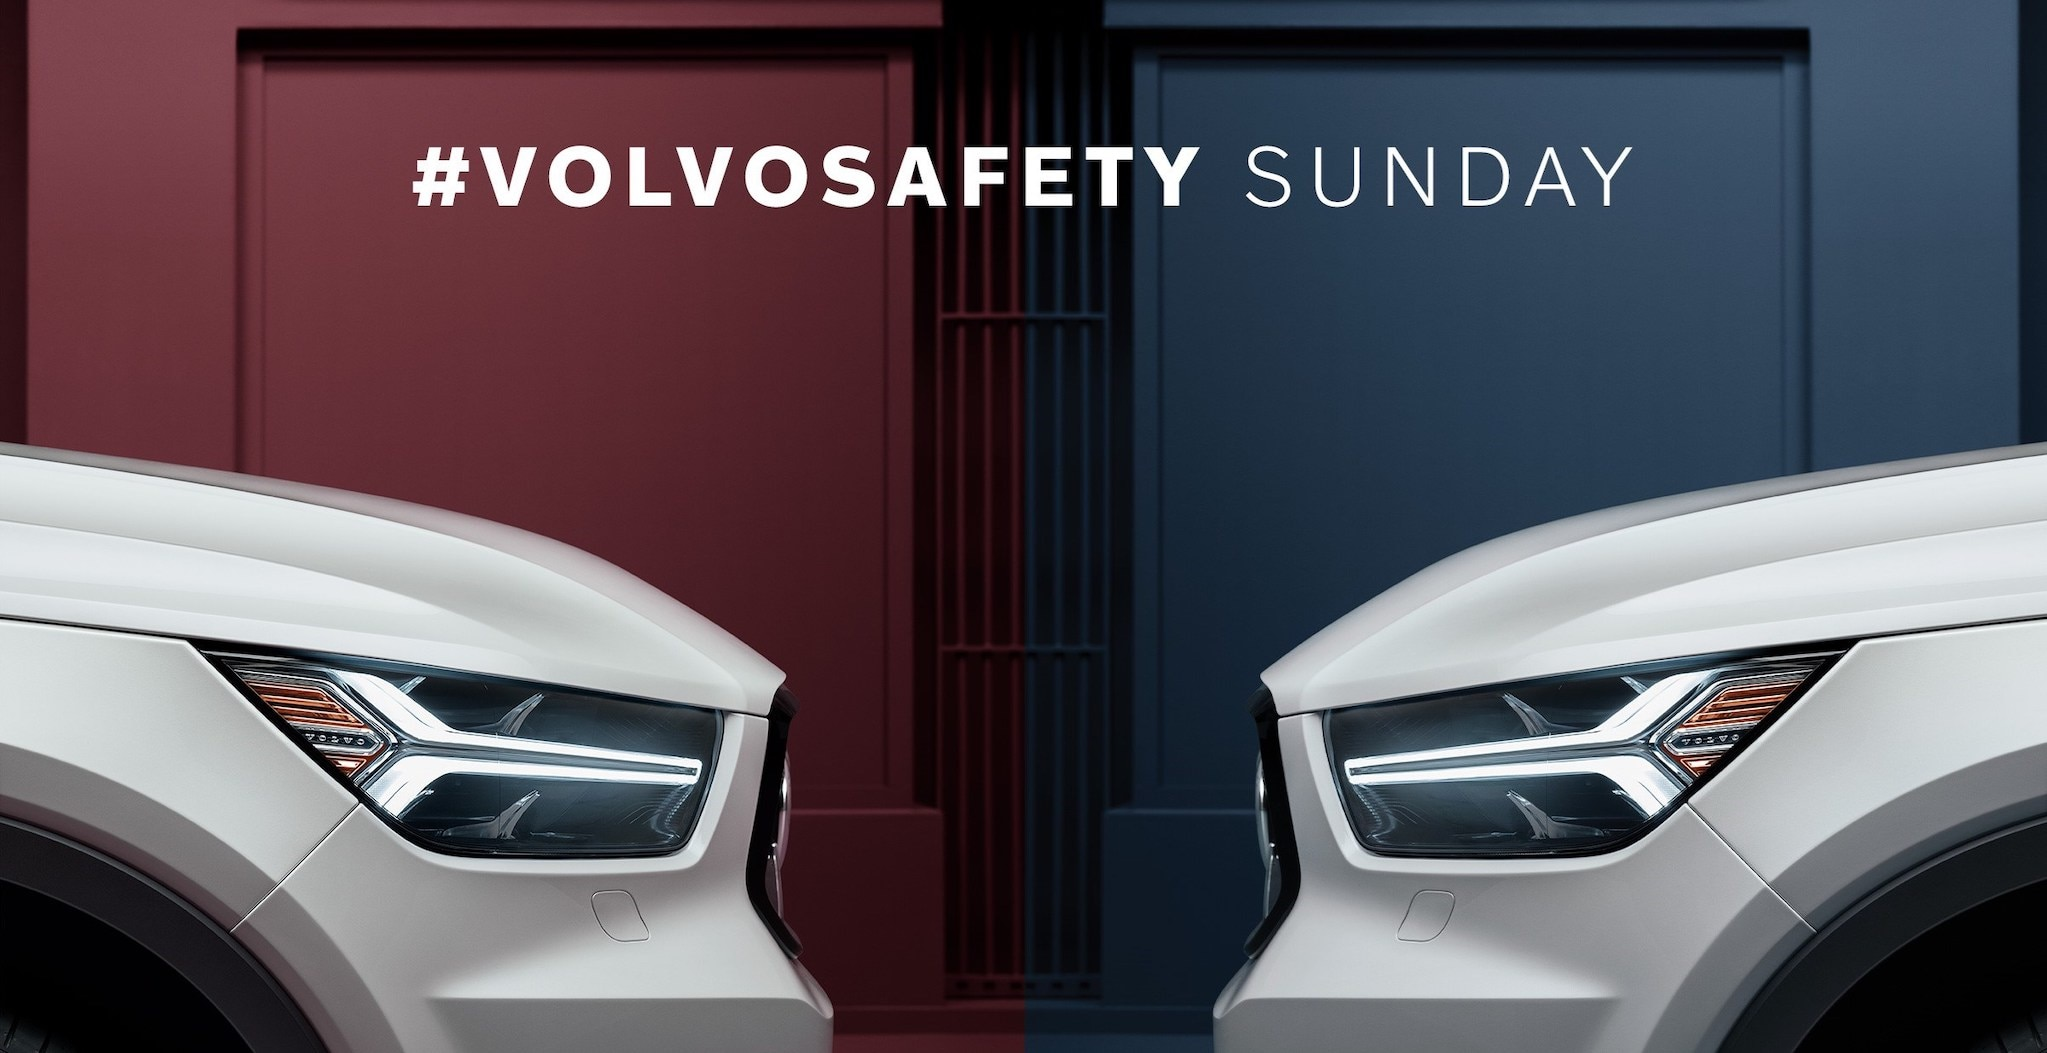 Volvo Will Give Away $1M in Cars if Rare Scoring Play Happens in the Super Bowl